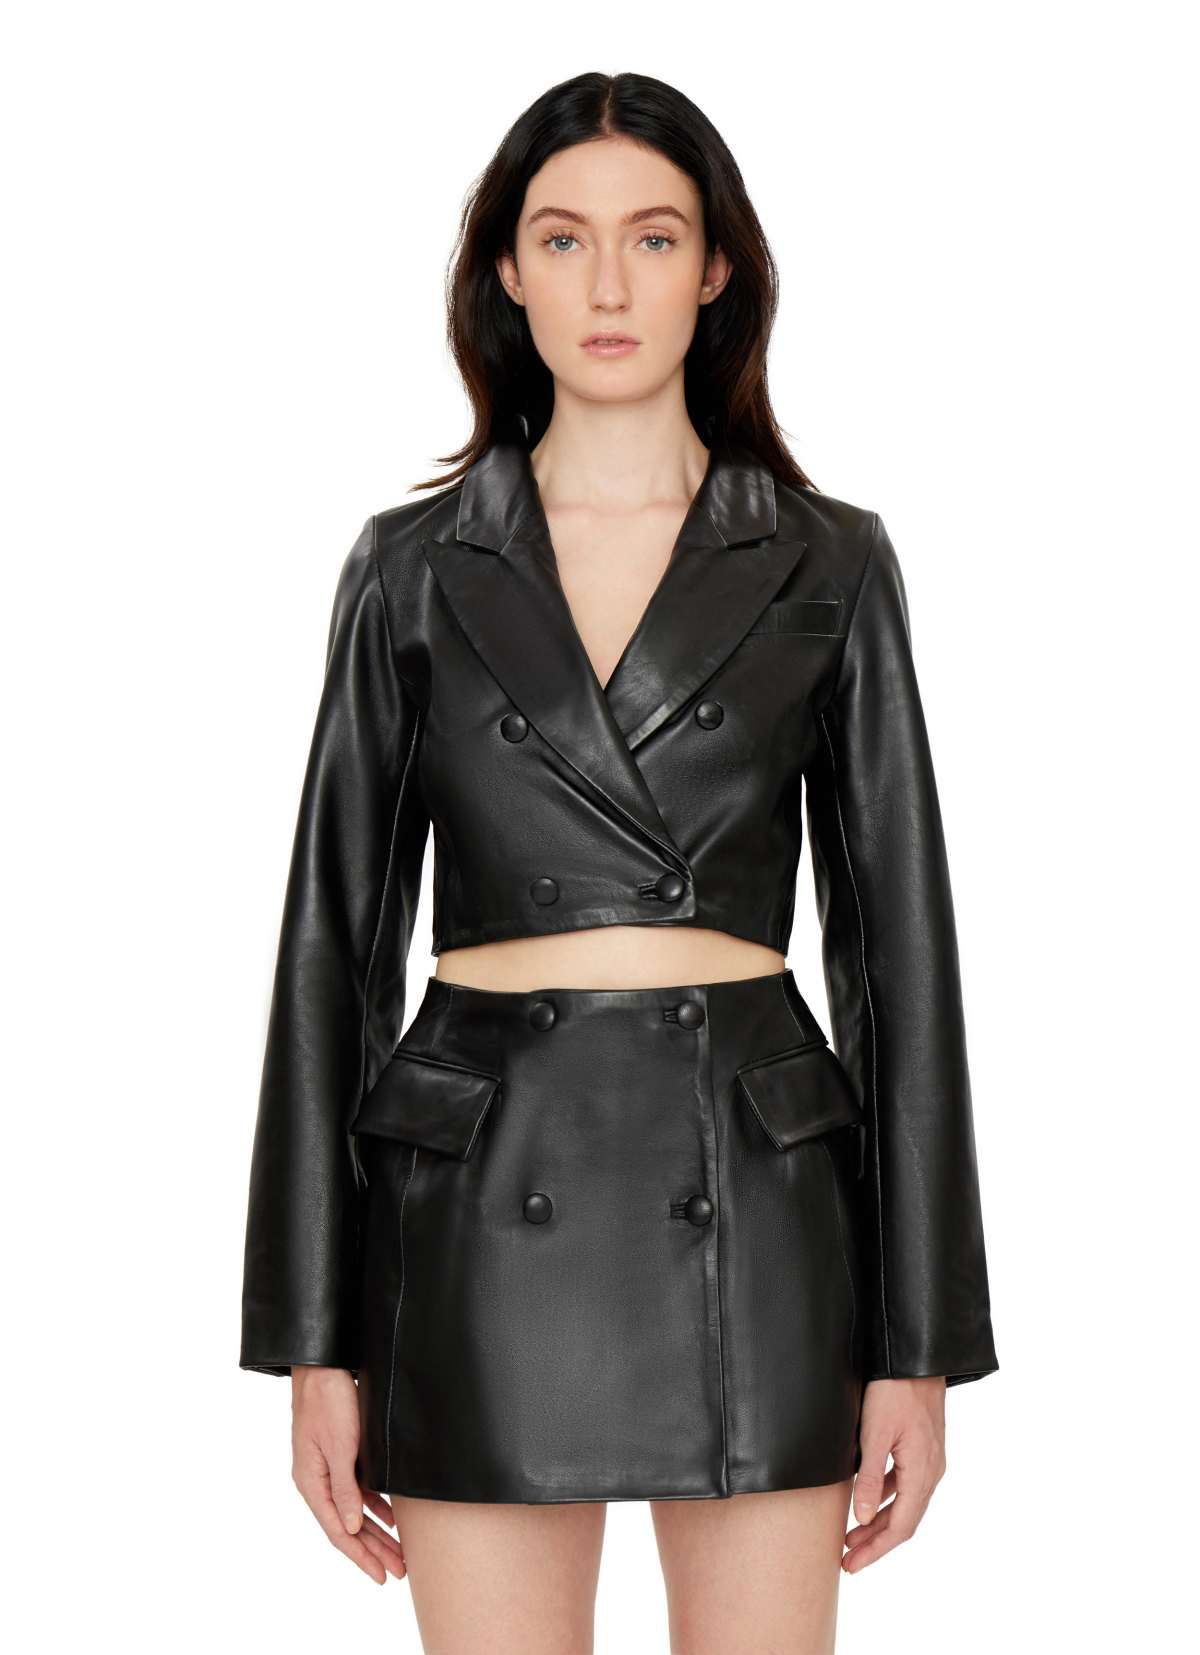 LEATHER BLAZER TOP by Danielle Guizio, available on danielleguiziony.com for $488 Kendall Jenner Outerwear SIMILAR PRODUCT